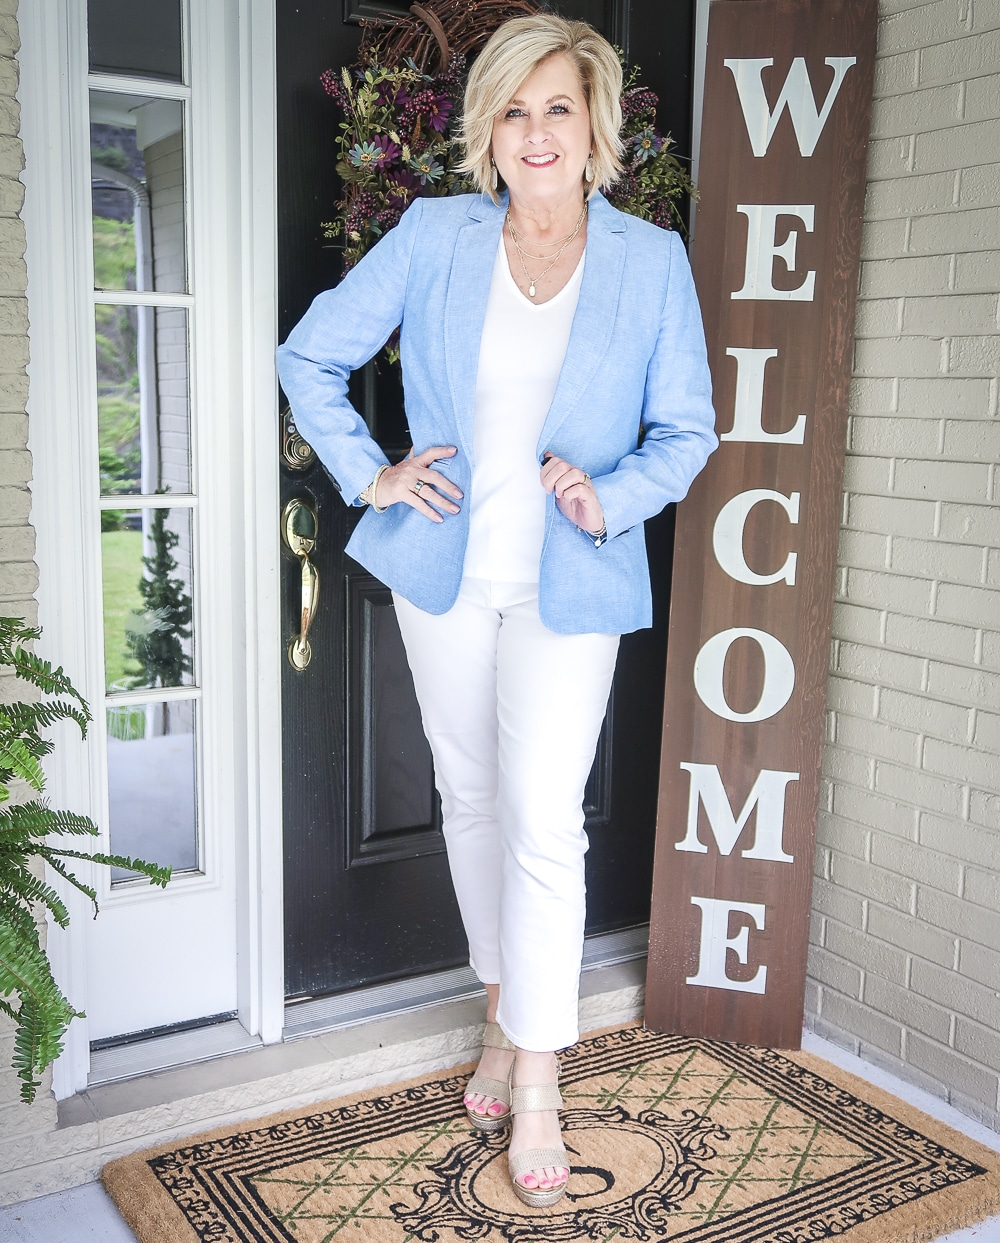 Fashion Blogger 50 Is Not Old is wearing an all white outfit with a blue linen blazer from Talbots and gold espadrilles